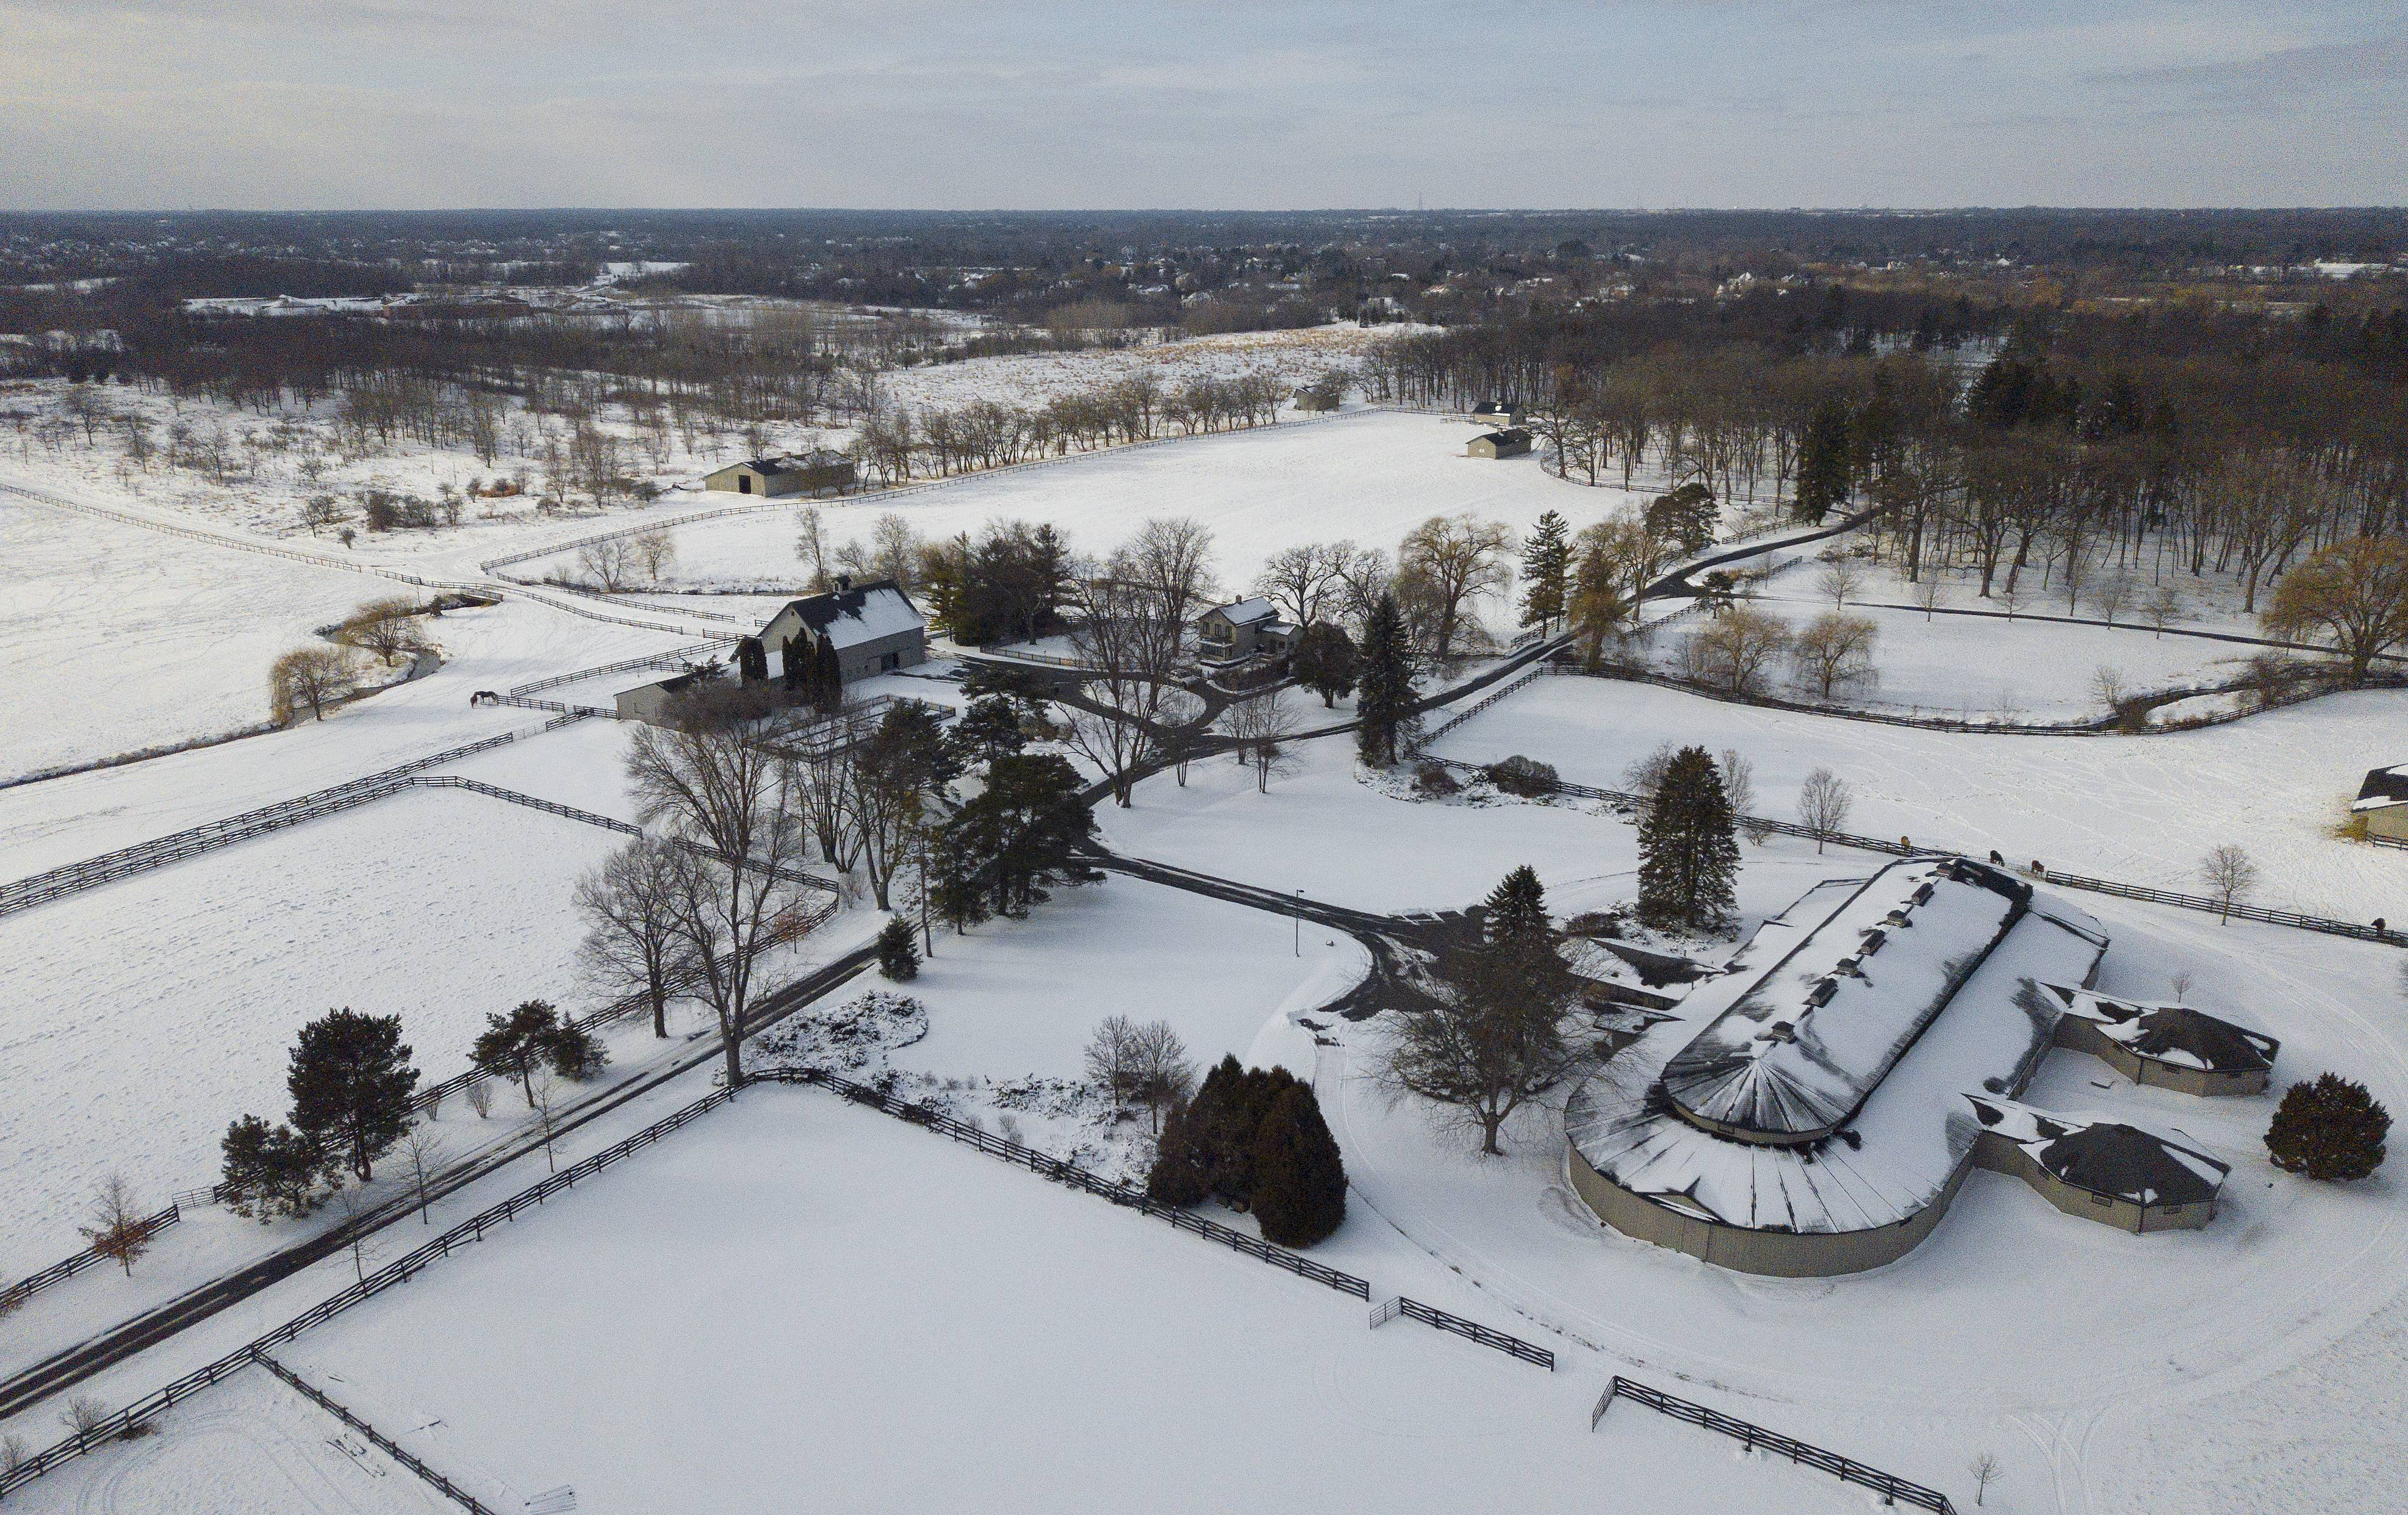 The owners of Windward Farm, which covers at least 200 acres in Long Grove, are questioning plans for a solar farm proposed on 3 acres of the bordering Woodlawn Middle School and Country Meadows Elementary School campus.